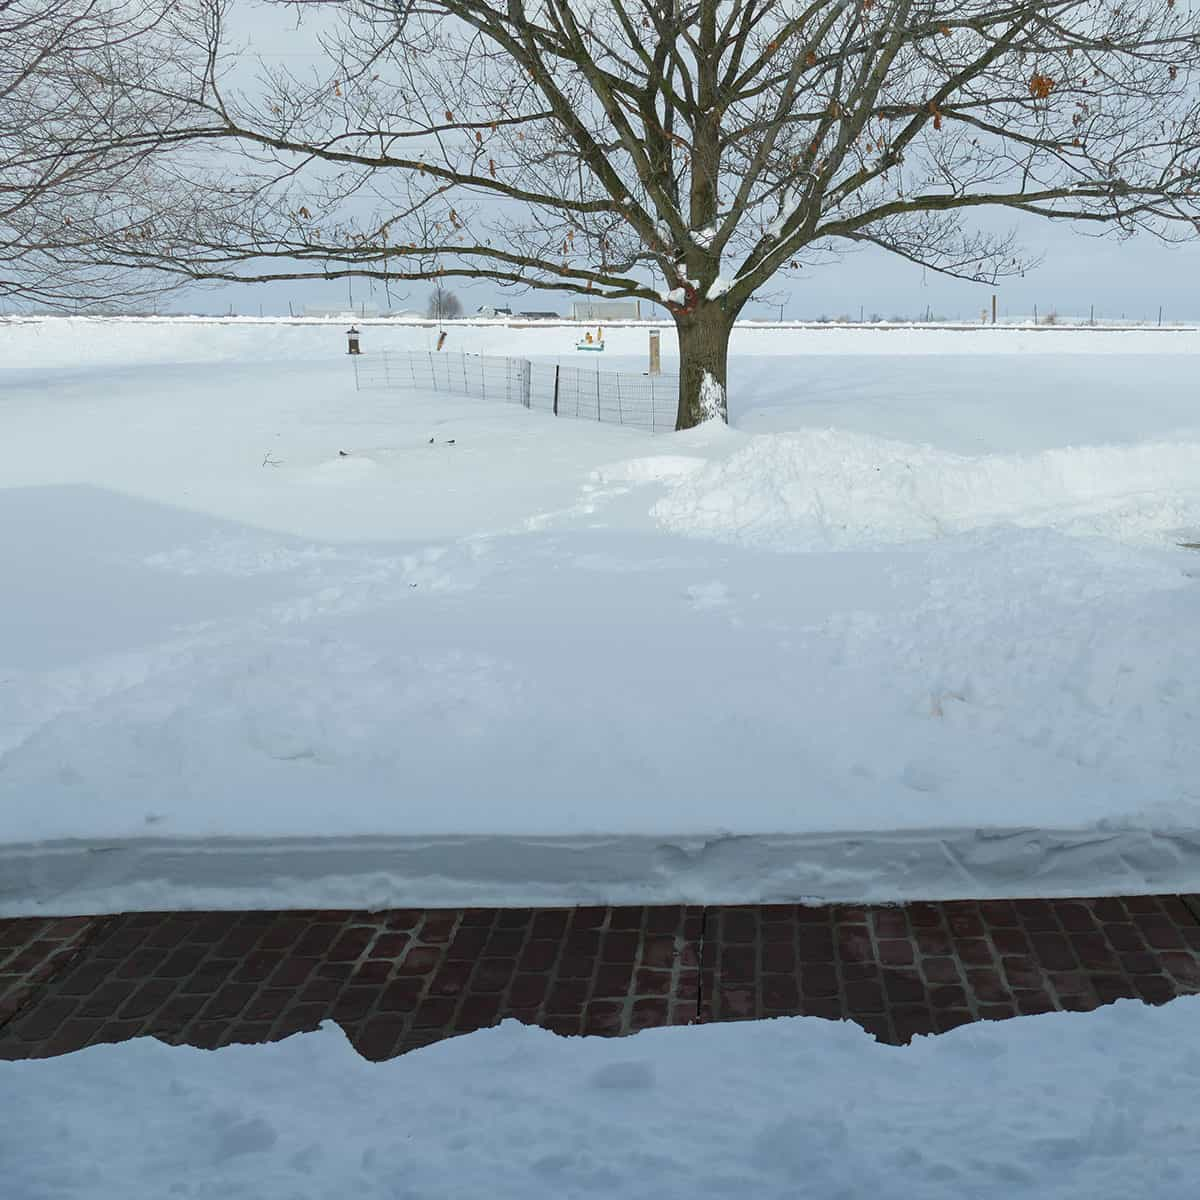 12 inches of snow at our house